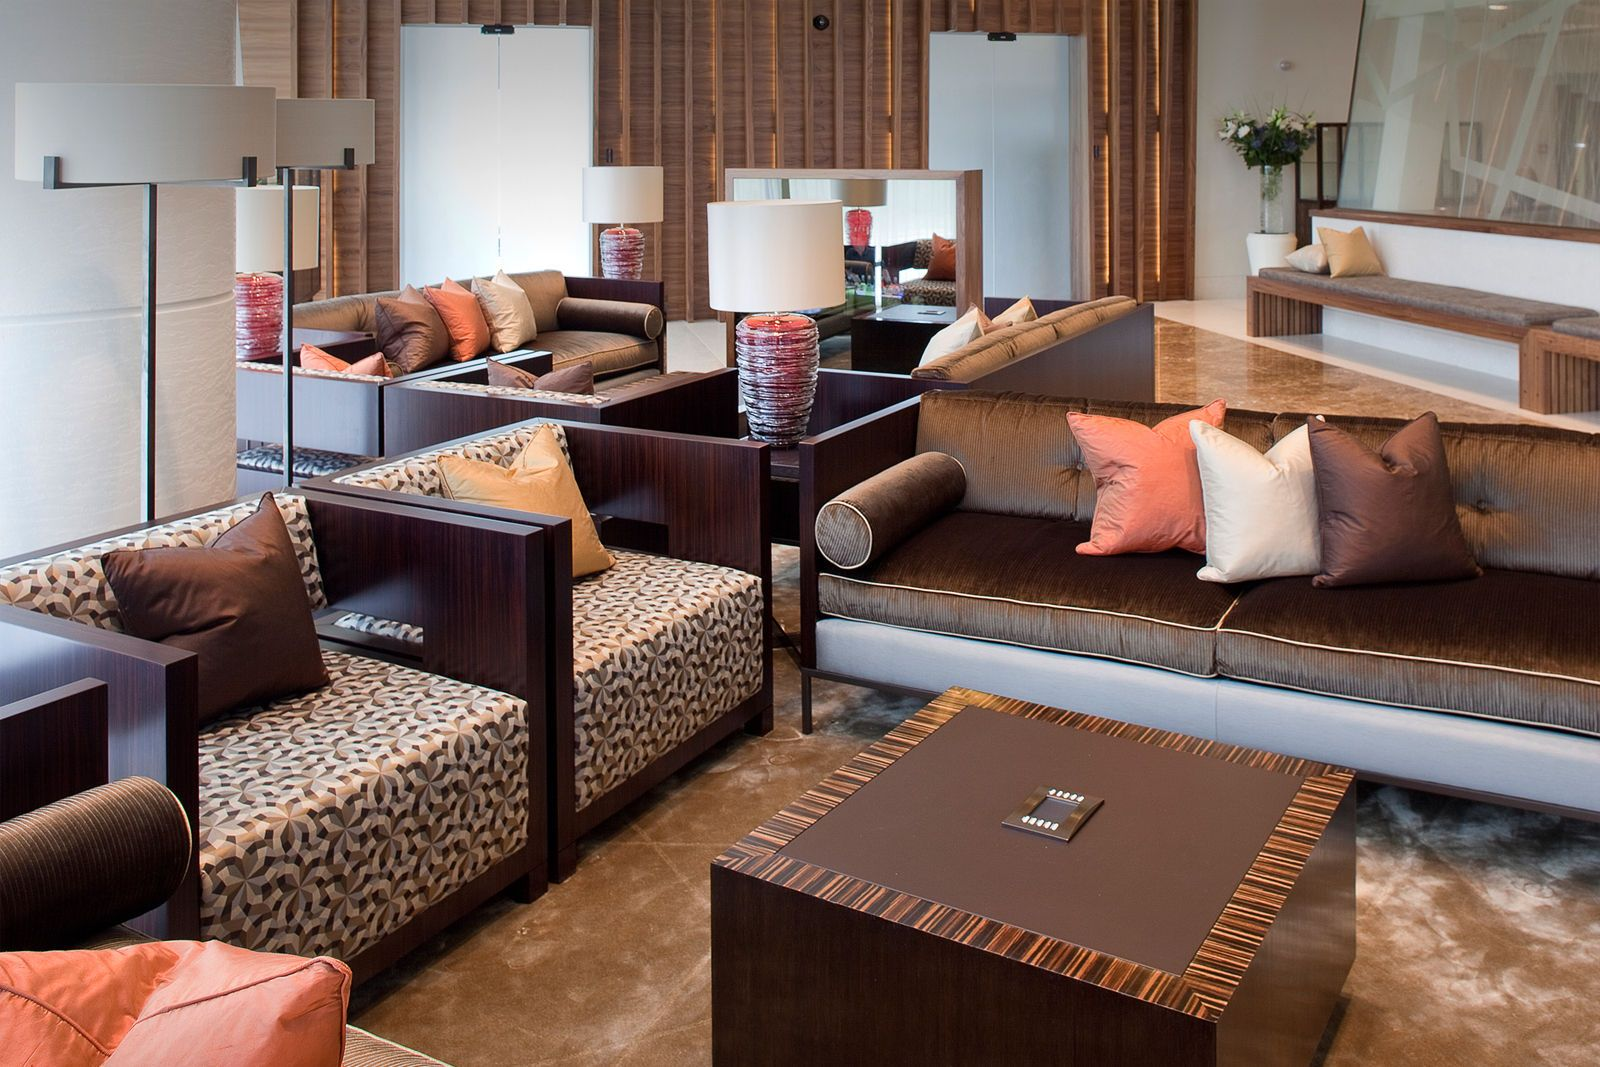 Hospitality Designers bar designers London SHH are architects and